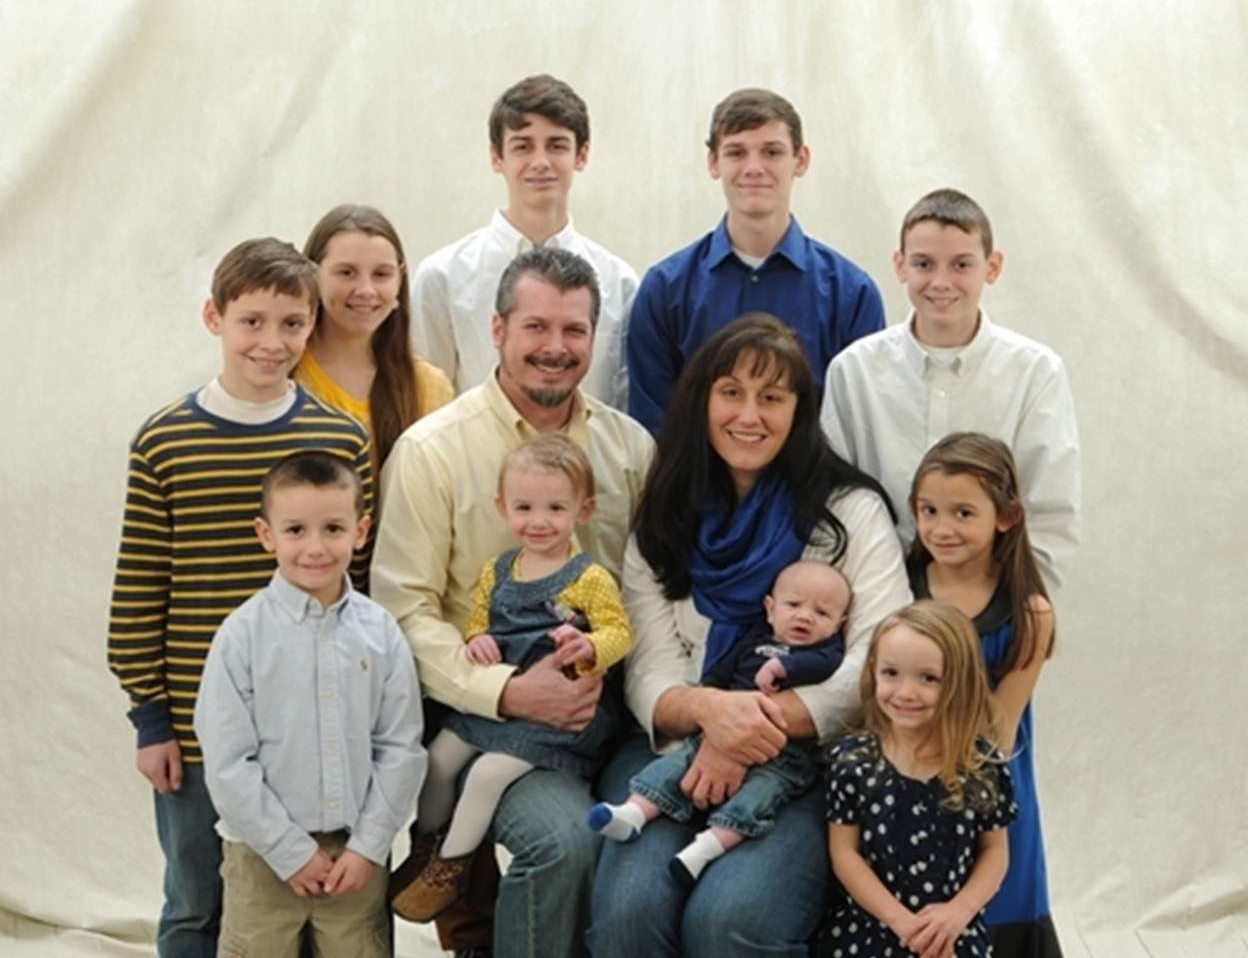 From oldest to youngest: Luke, Ty, Gabe, Amelia, Jack, Britta, Drew, Piper, Willow, Ezra